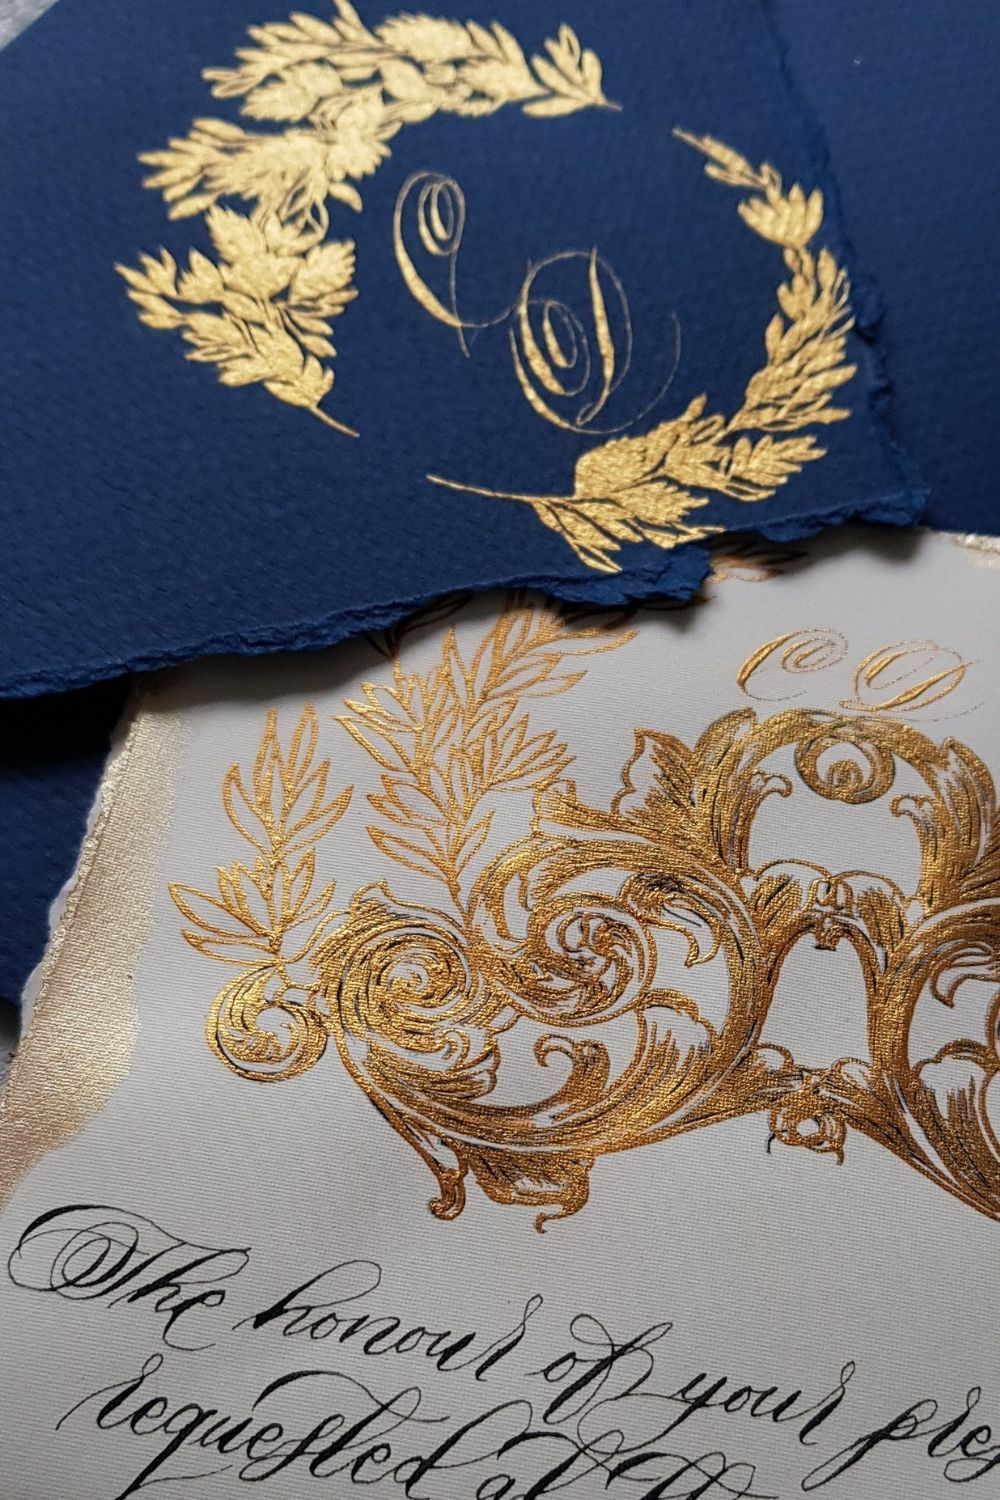 Luxury white and gold wedding invitations with a hand made, gold vintage French style crest design